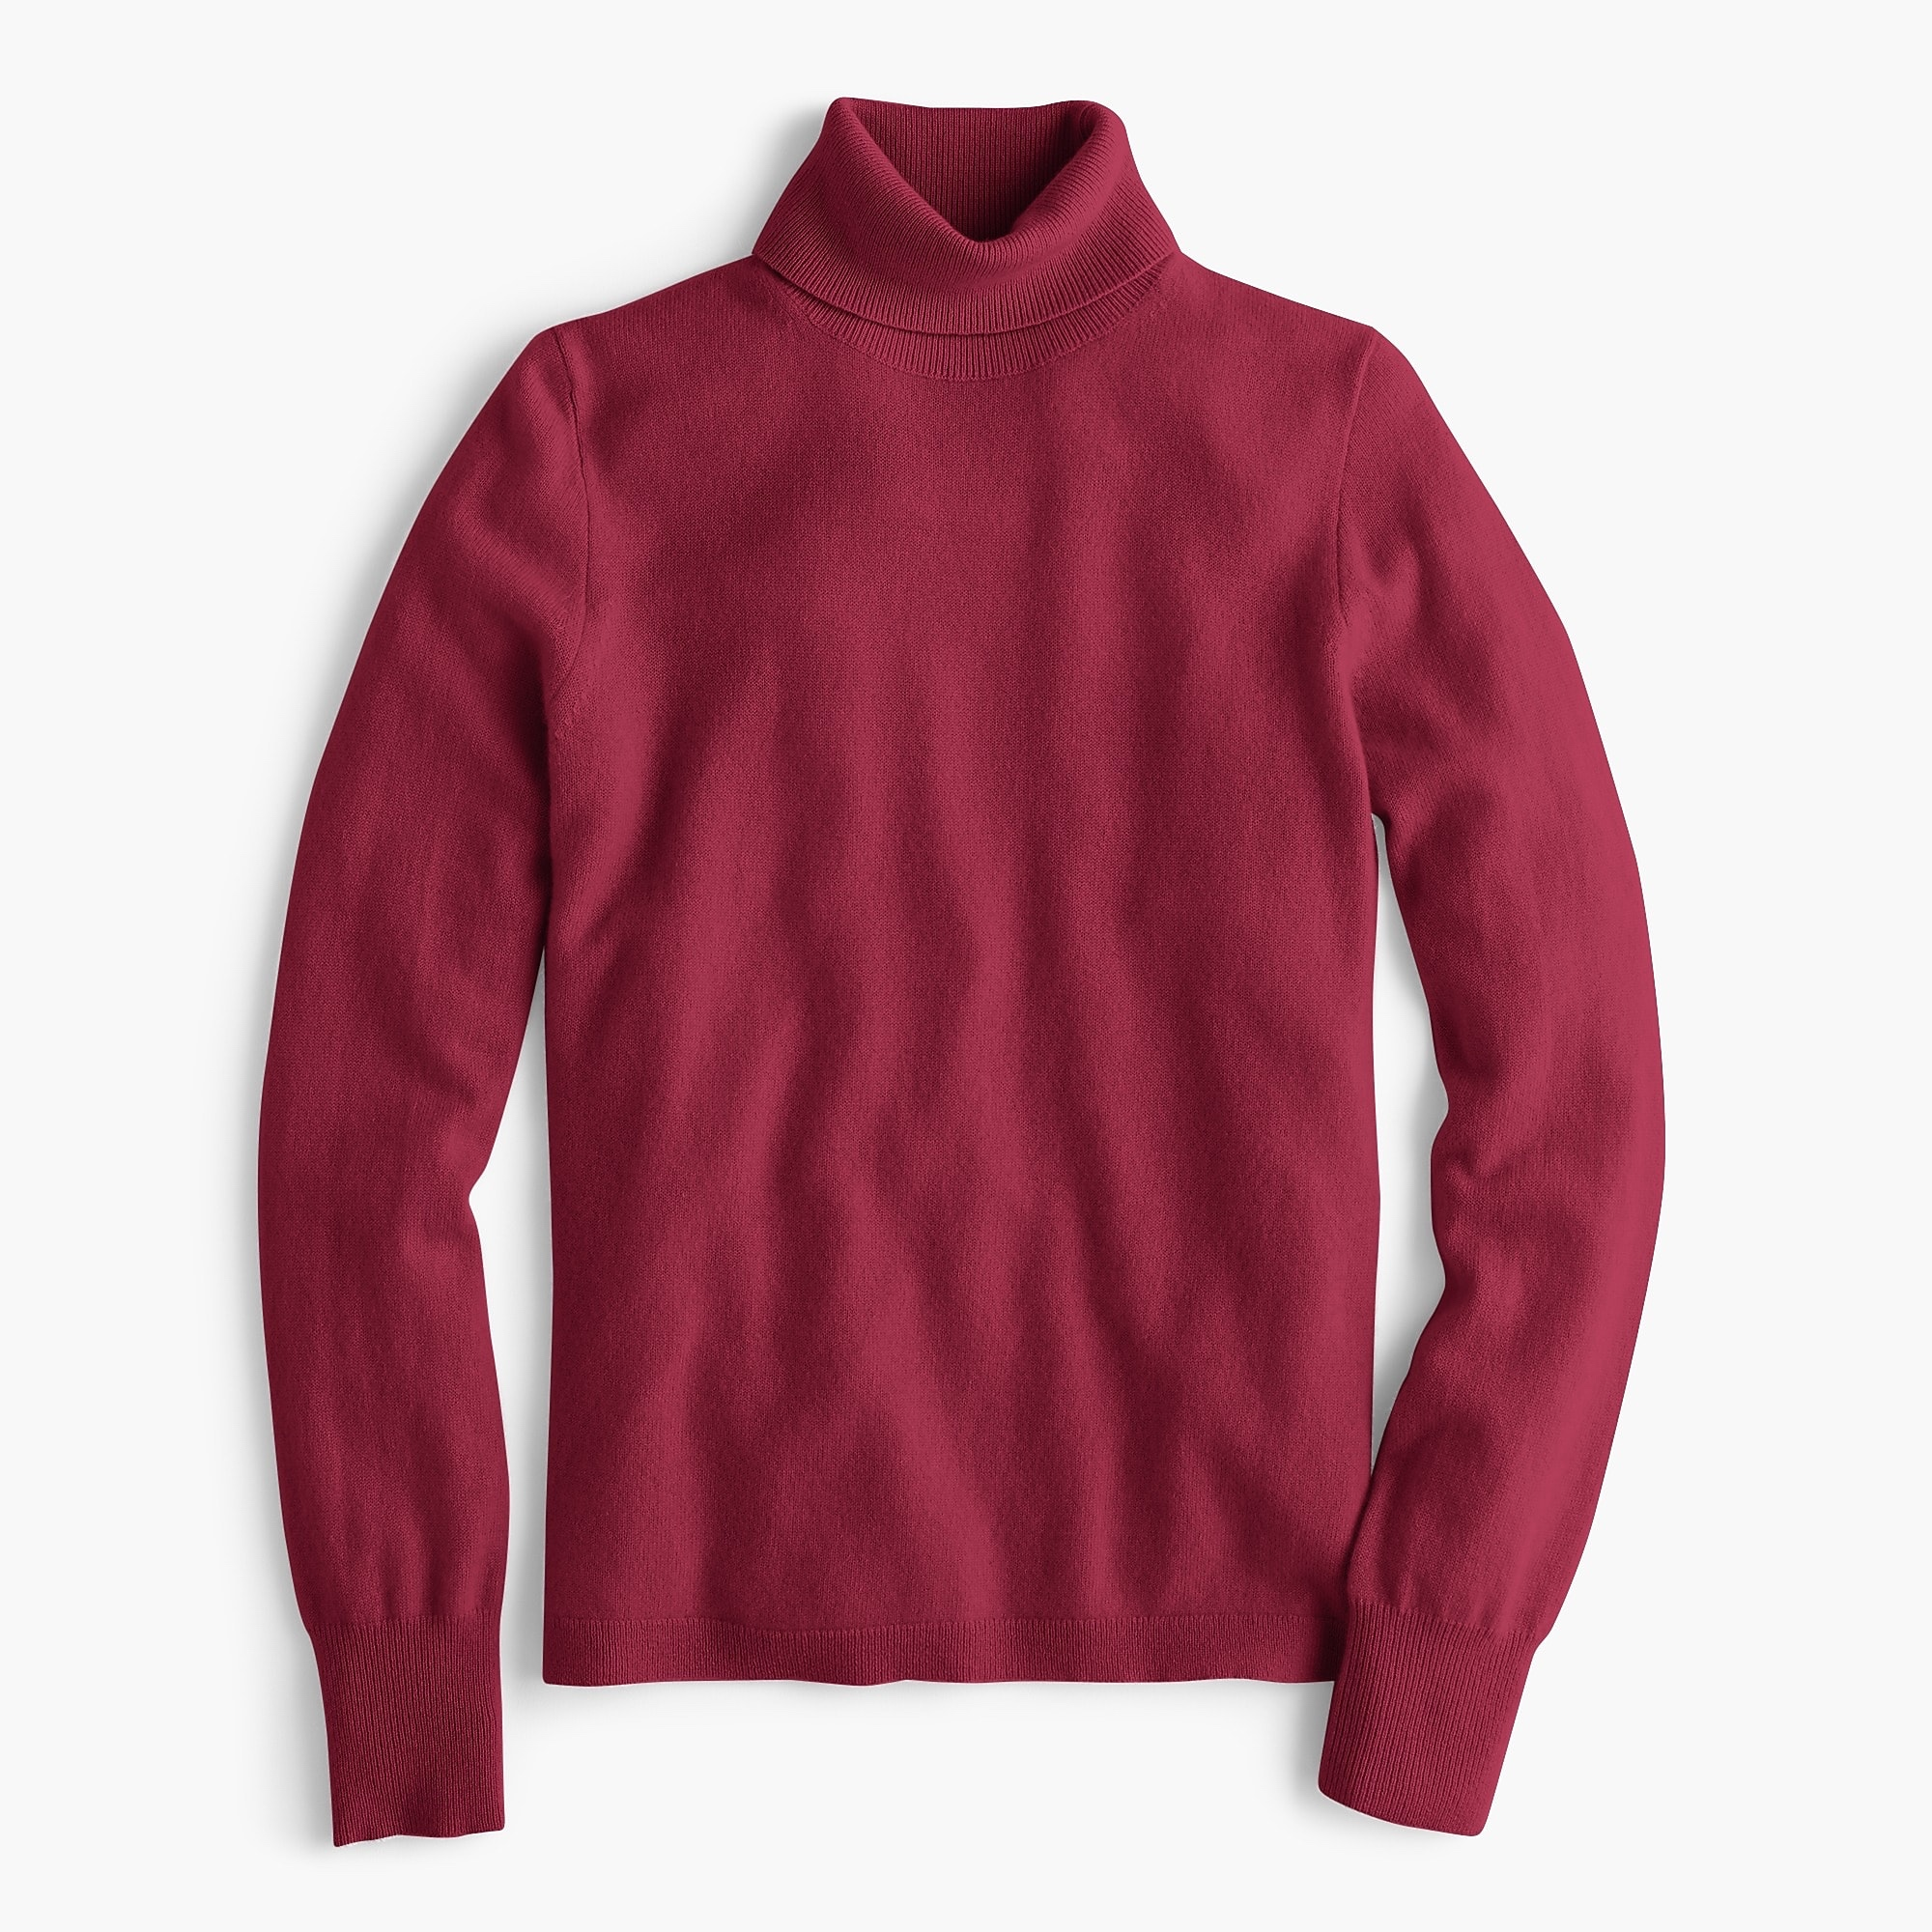 Burgundy cashmere turtleneck sweater jcrew